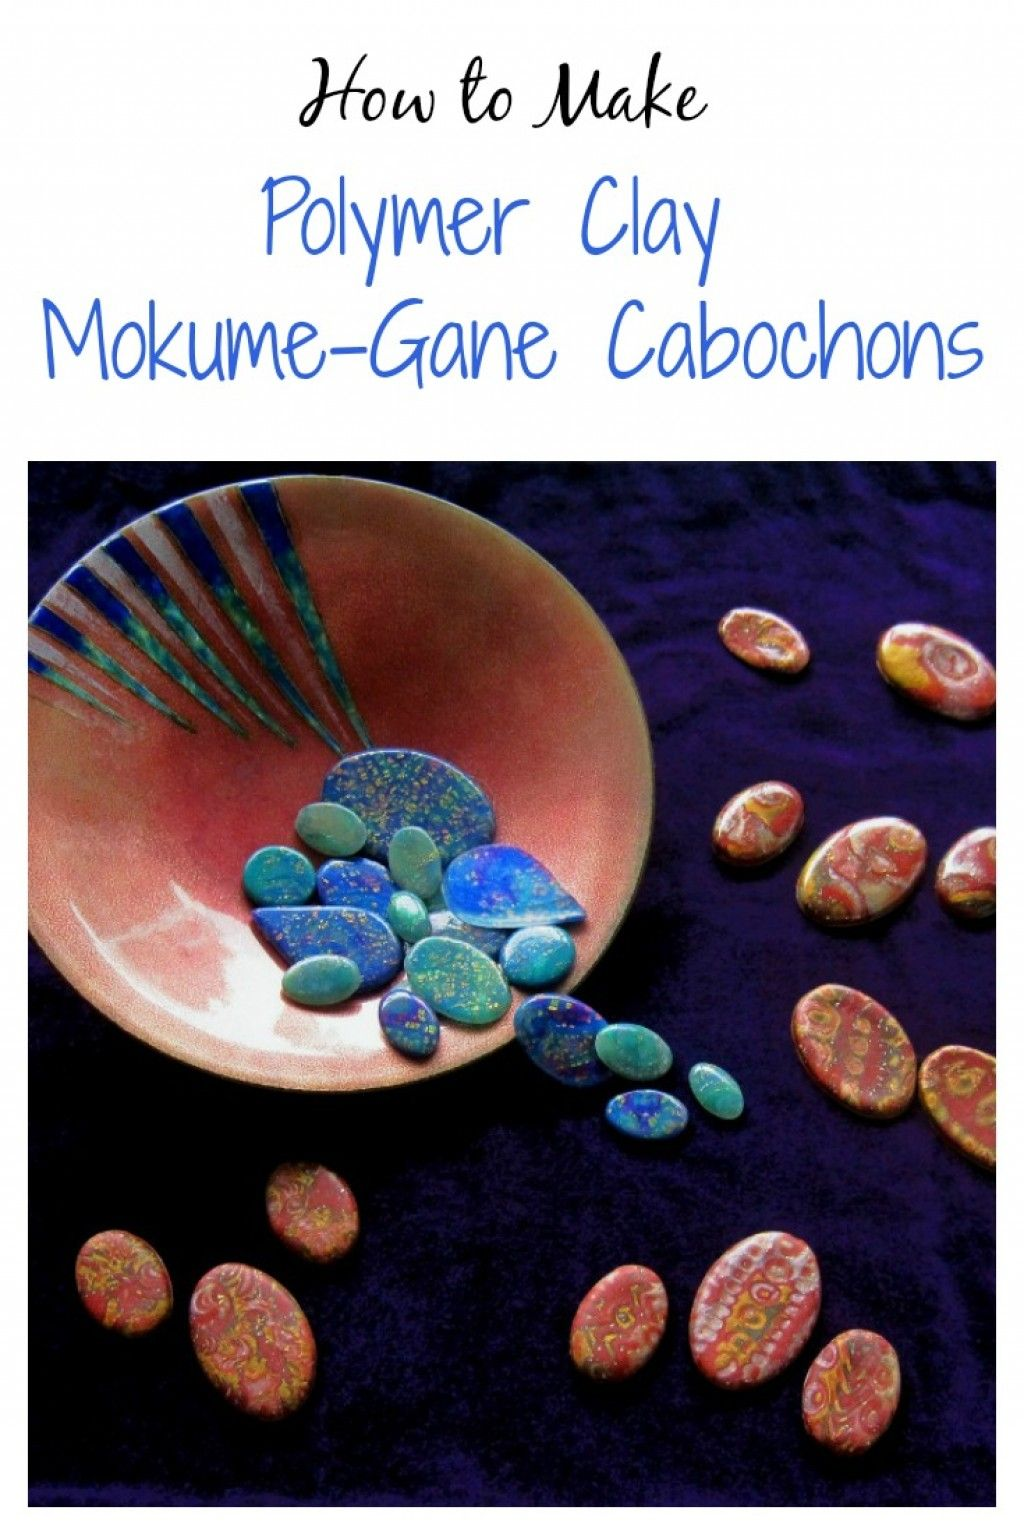 A polymer clay mokume gane tutorial with step-by-step instructions for making a mokume veneer sheet that can be used to cover polymer clay beads or other forms and how to create mokume gane cabochons.